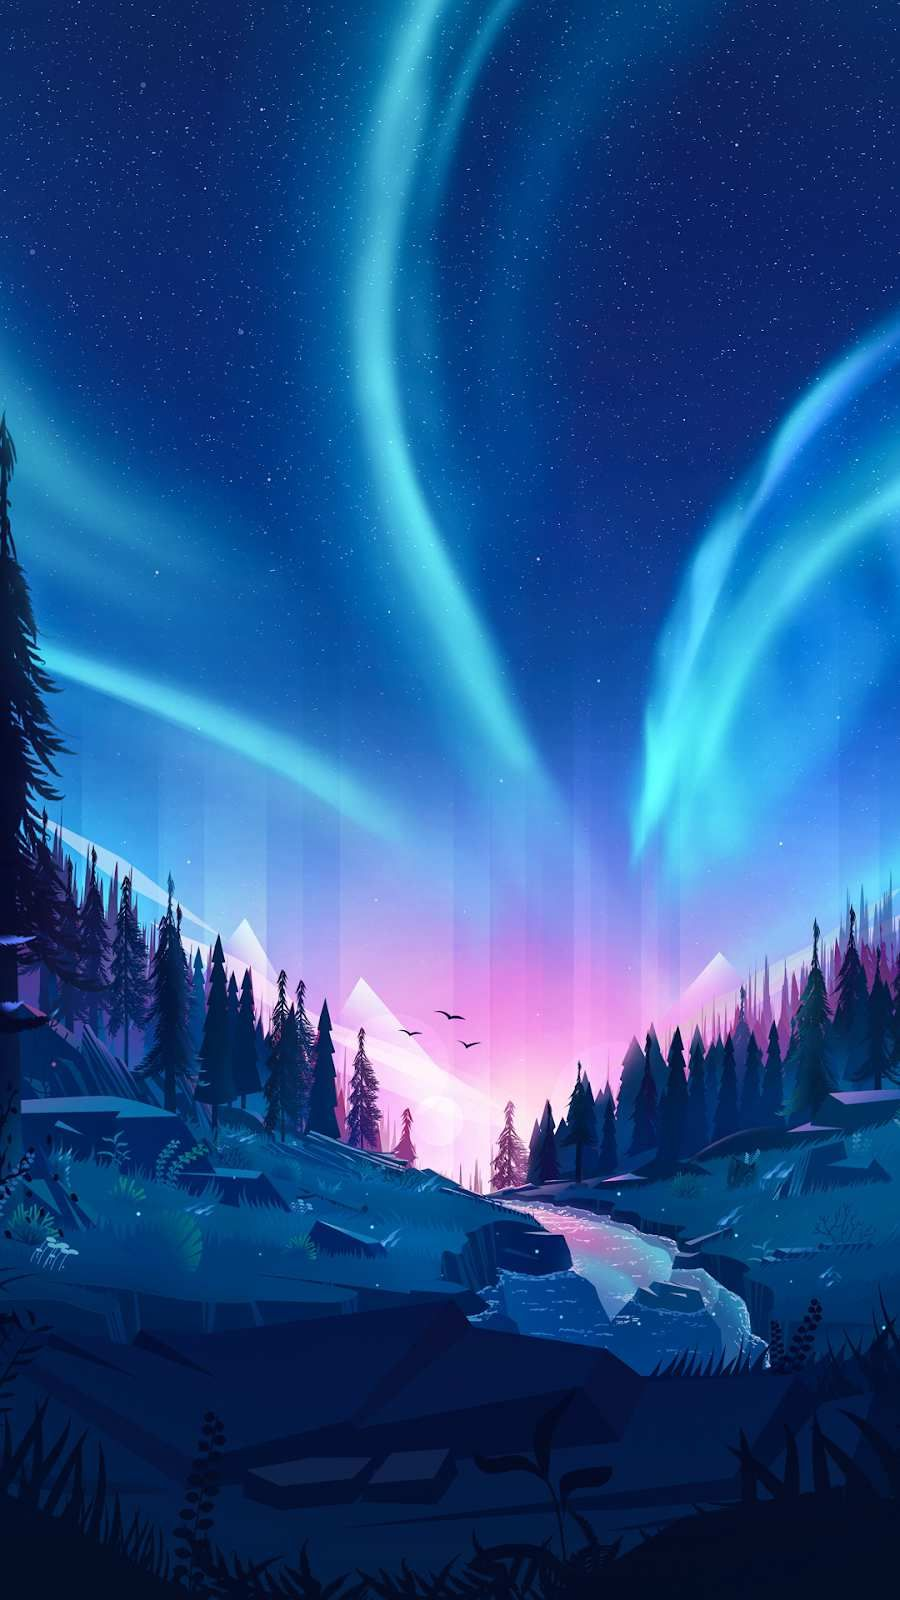 Beautiful Nature Aurora Sky Art Iphone Wallpaper Scenery Wallpaper Sky Art Landscape Wallpaper